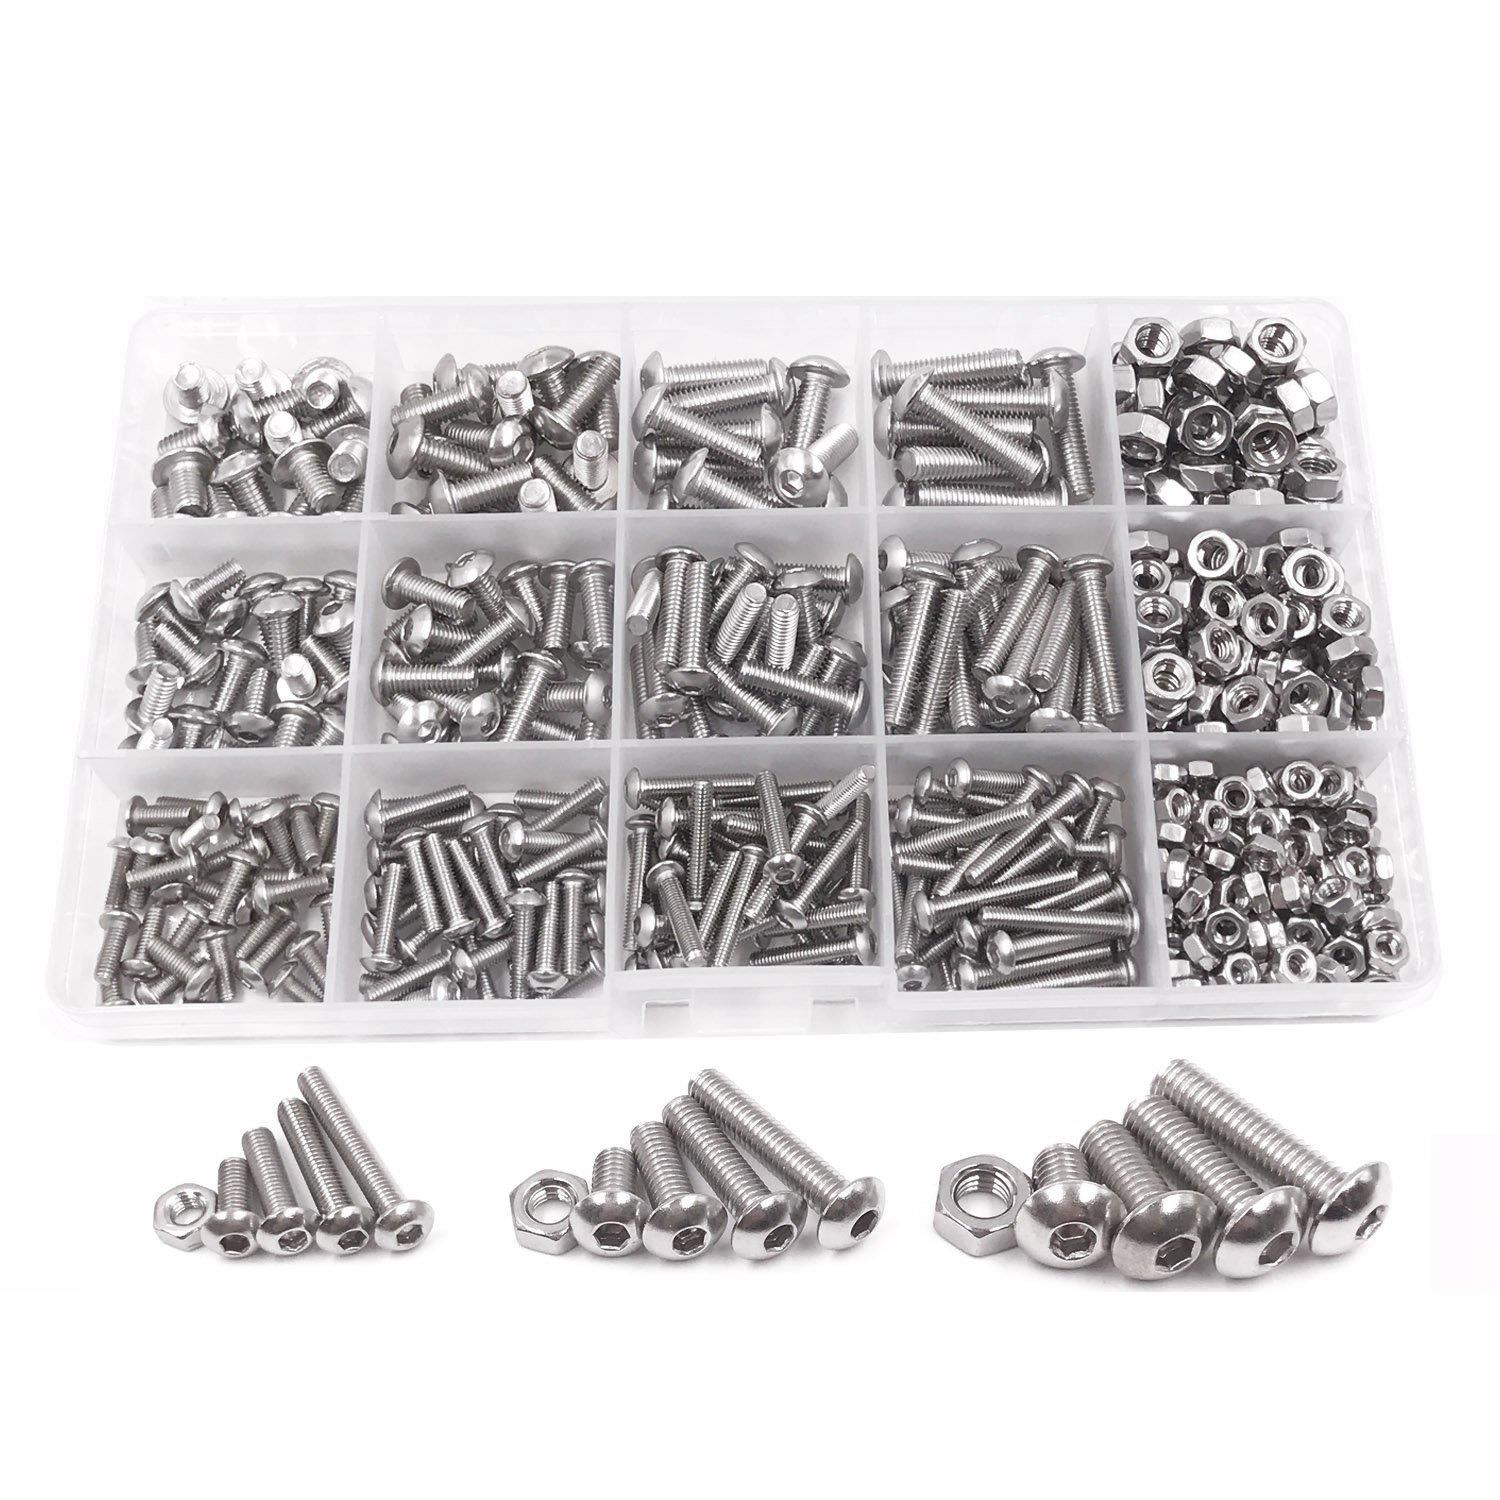 CNIM Hot 500pcs M3 M4 M5 A2 Stainless Steel ISO7380 Button Head Hex Bolts Hexagon Socket Screws With Nuts Assortment Kit